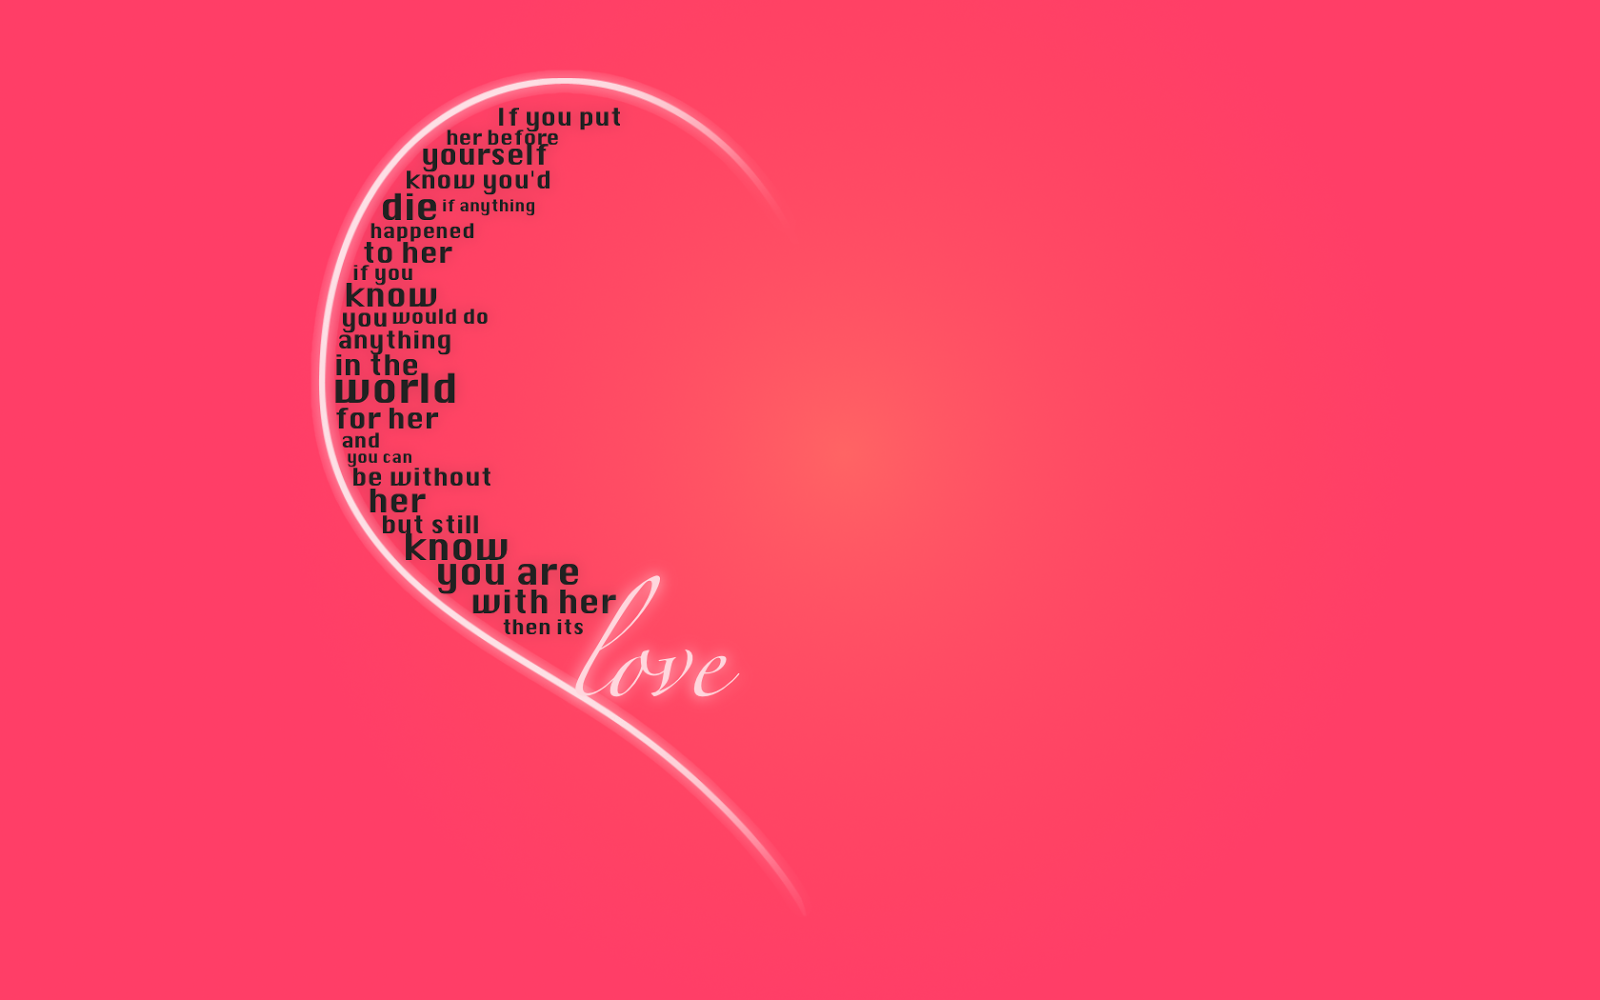 Love note on a heart shape with pink background